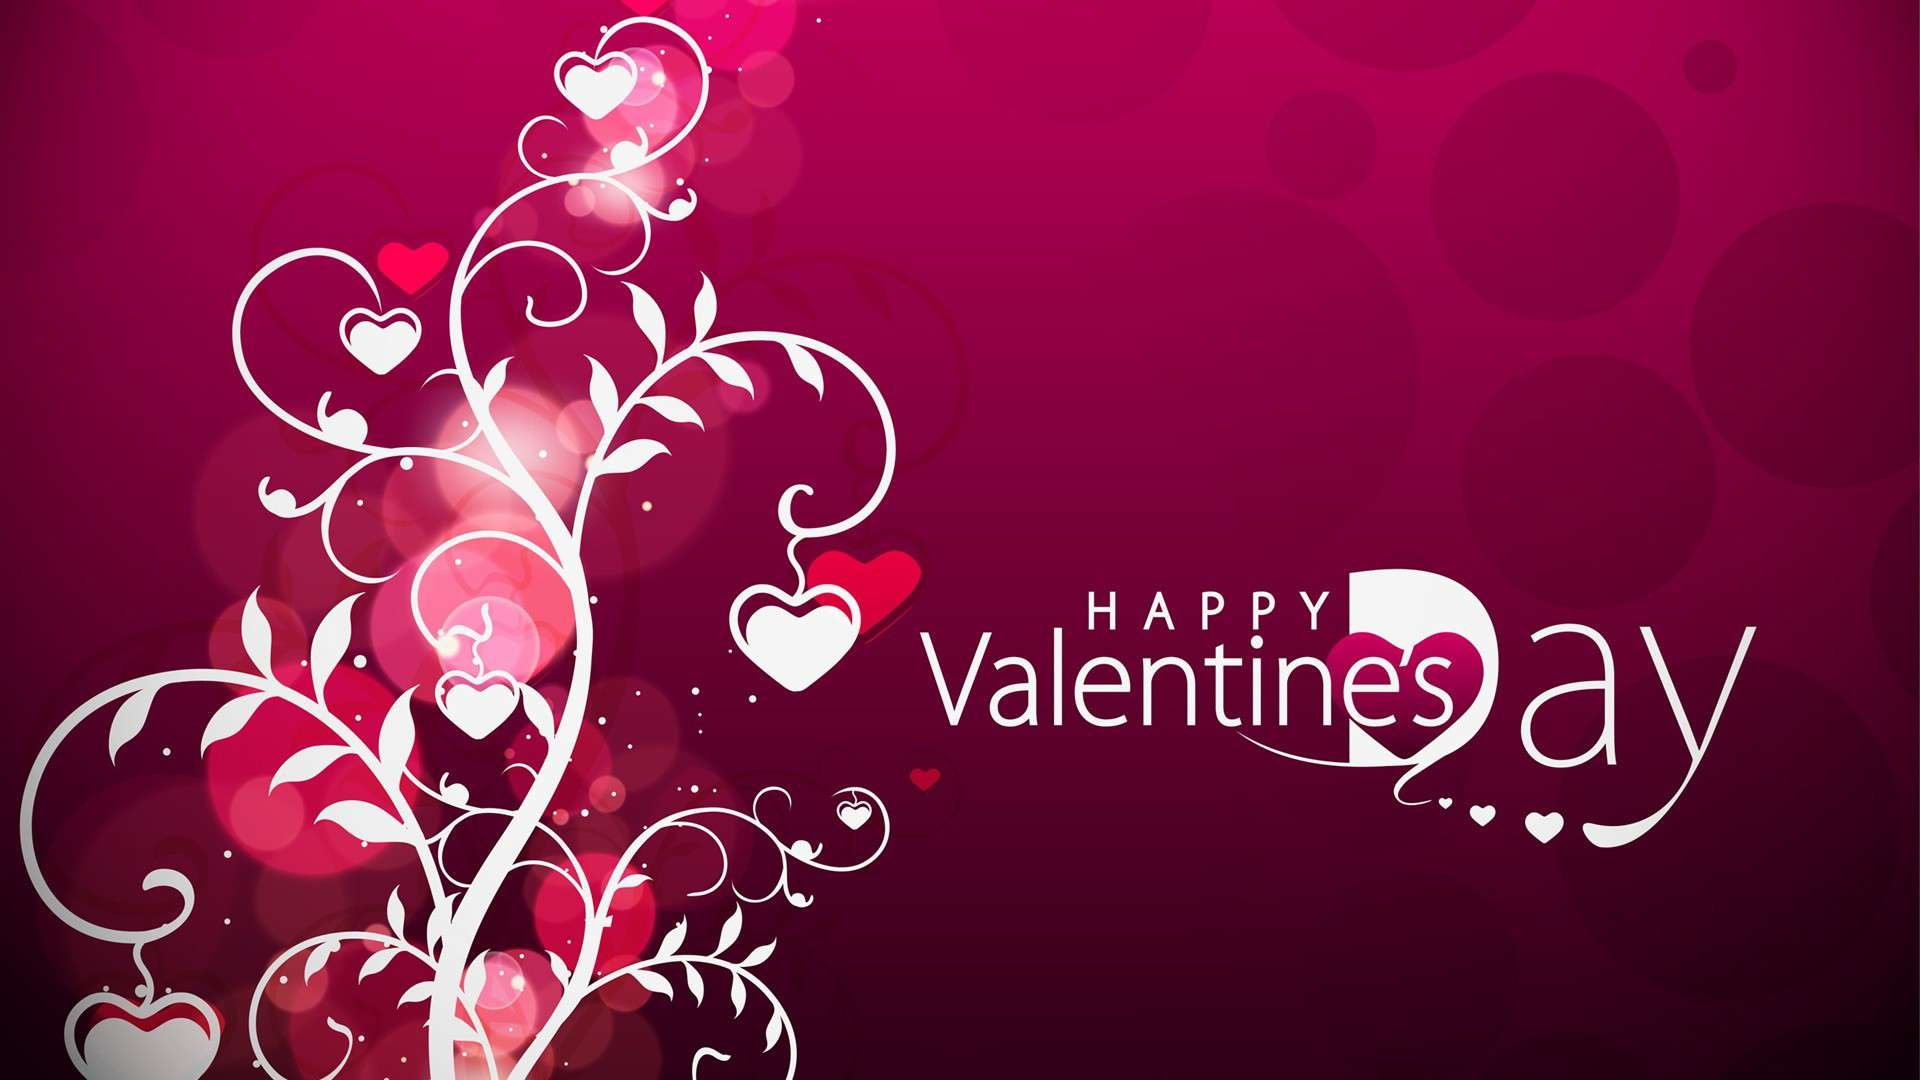 Love Wallpapers Valentine Day : 25 Romantic Valentines Day Wallpapers PicsHunger